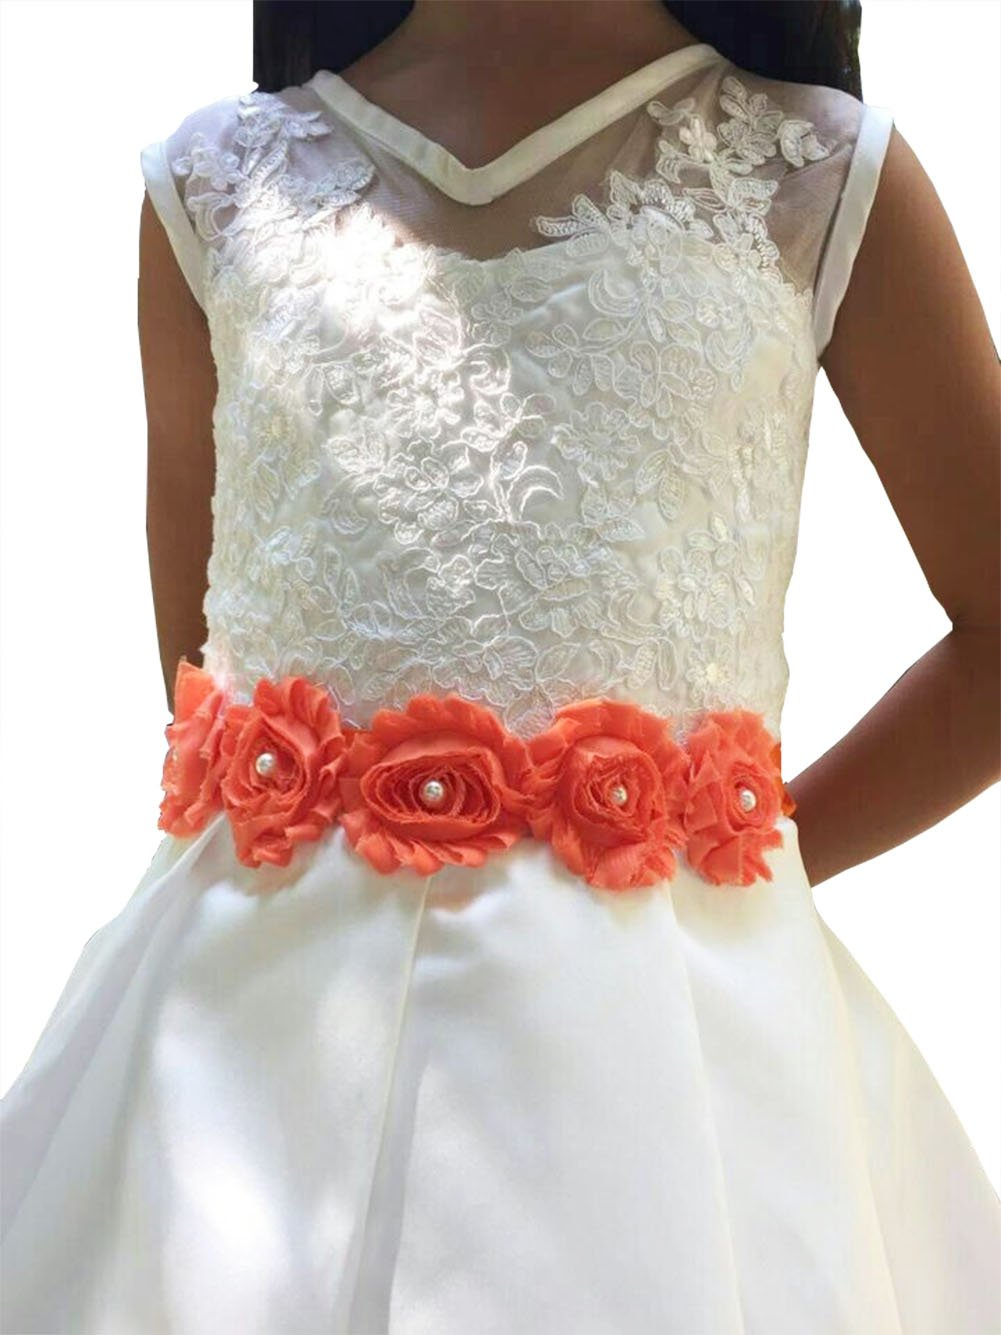 Lemandy Vintage Chiffon Flower and Pearls Flowergirls Sash for Pageant Prom Wedding in 10 Colors (Orange)